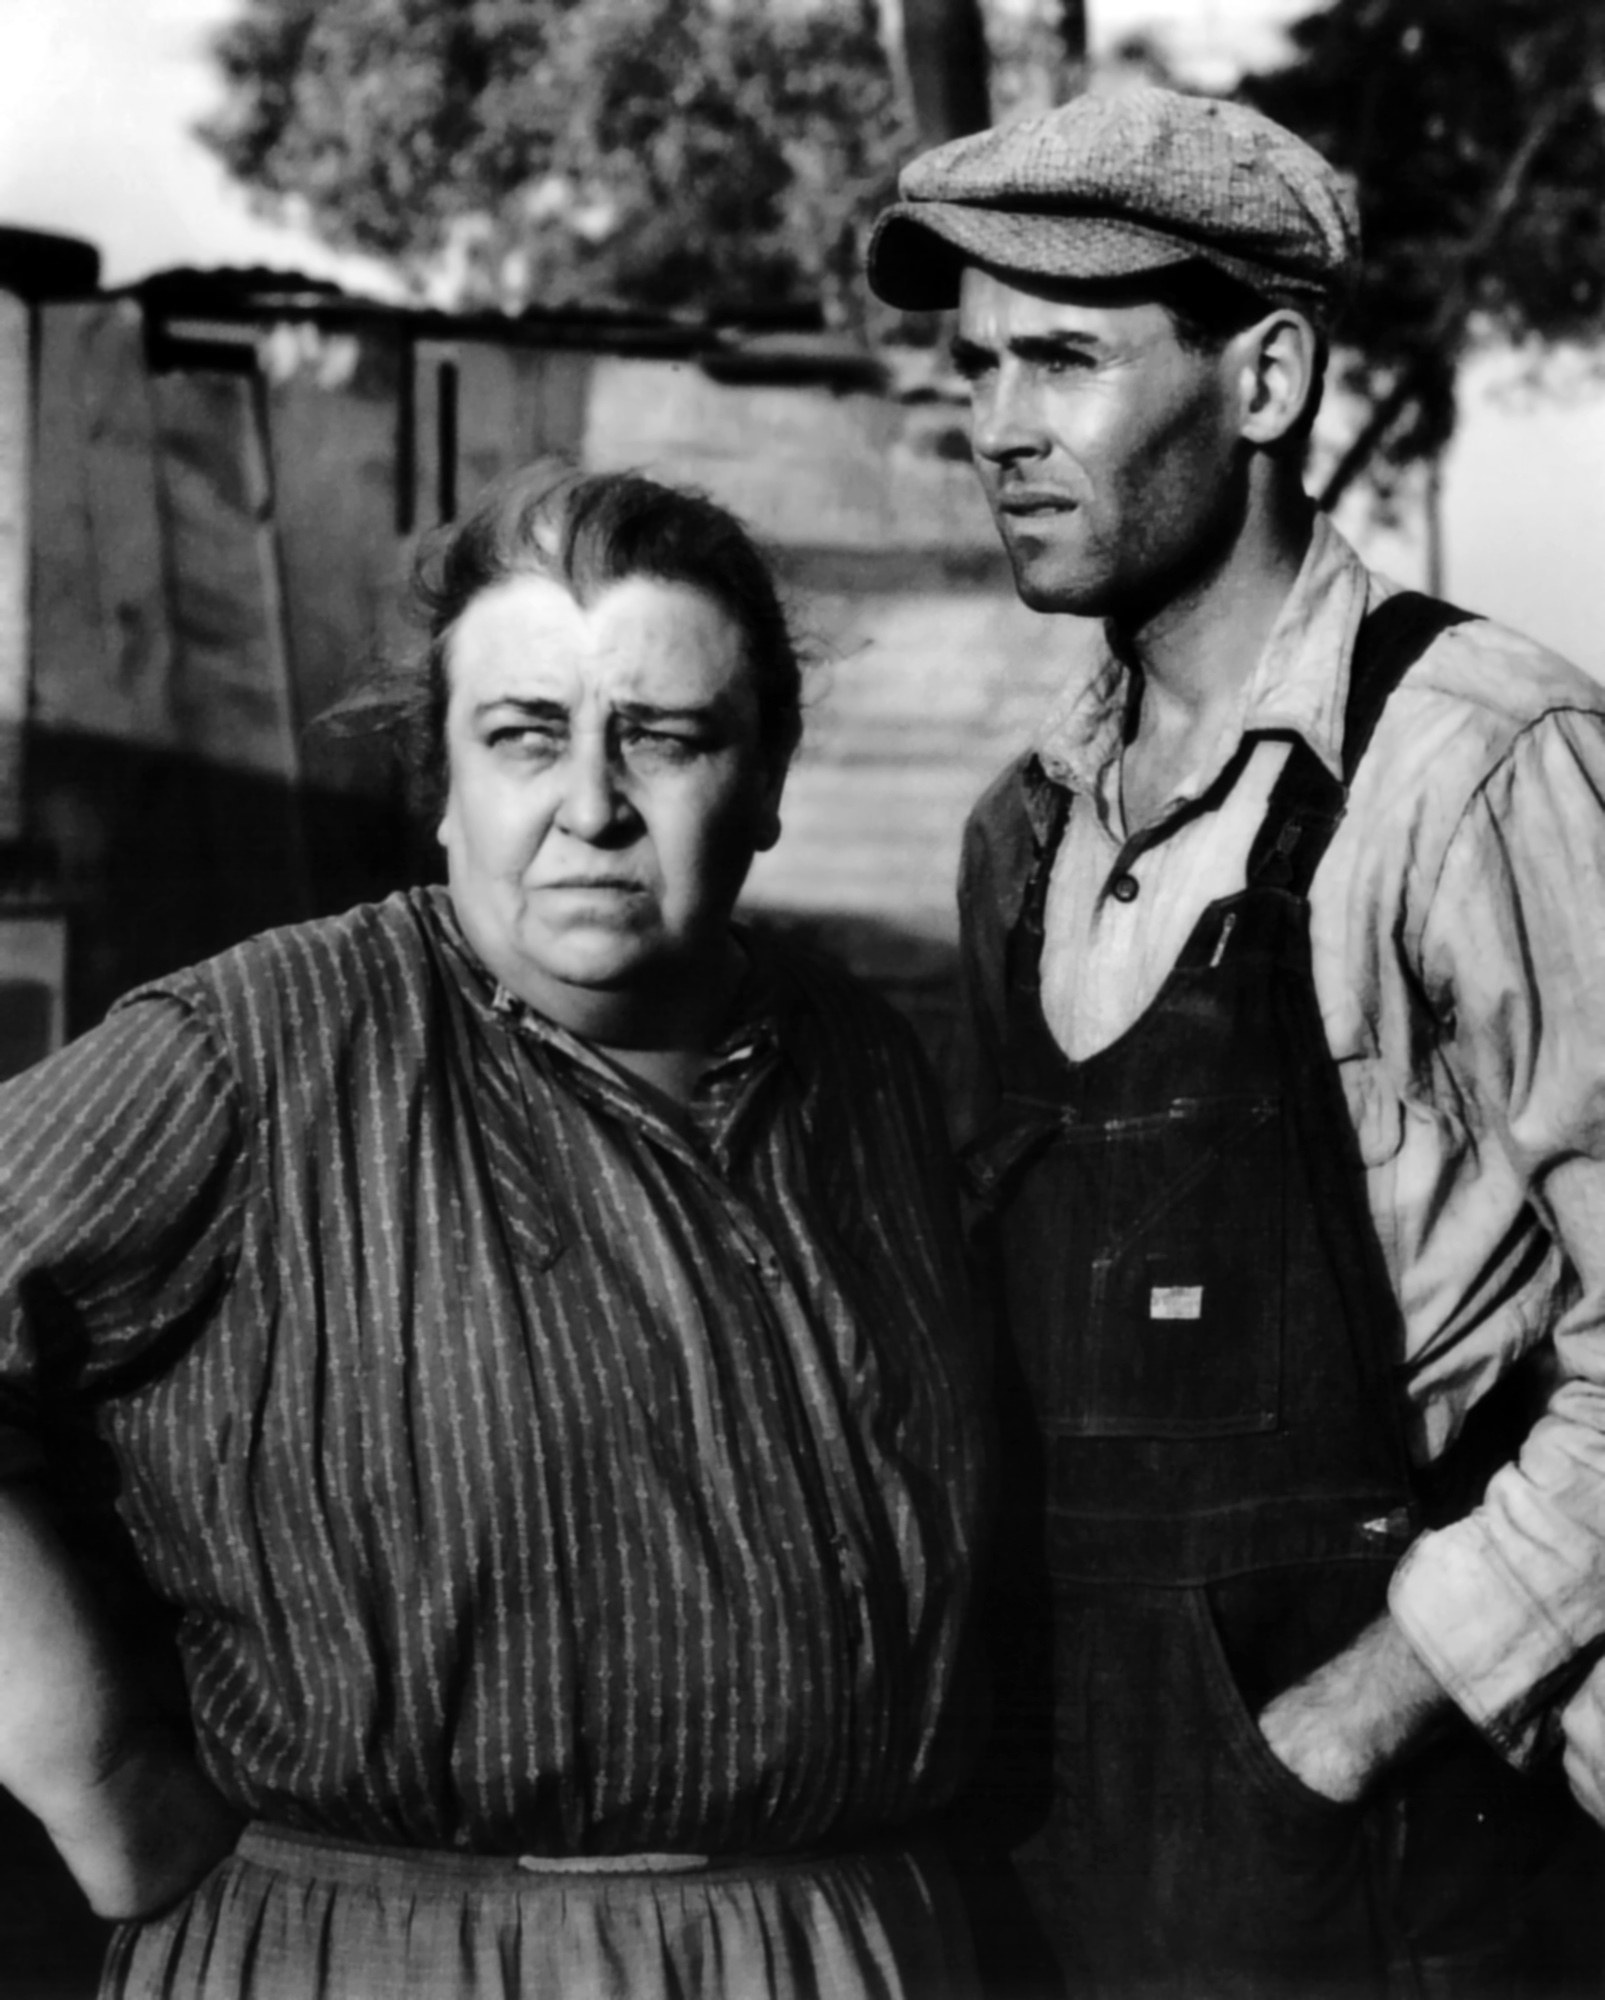 Grapes of wrath film